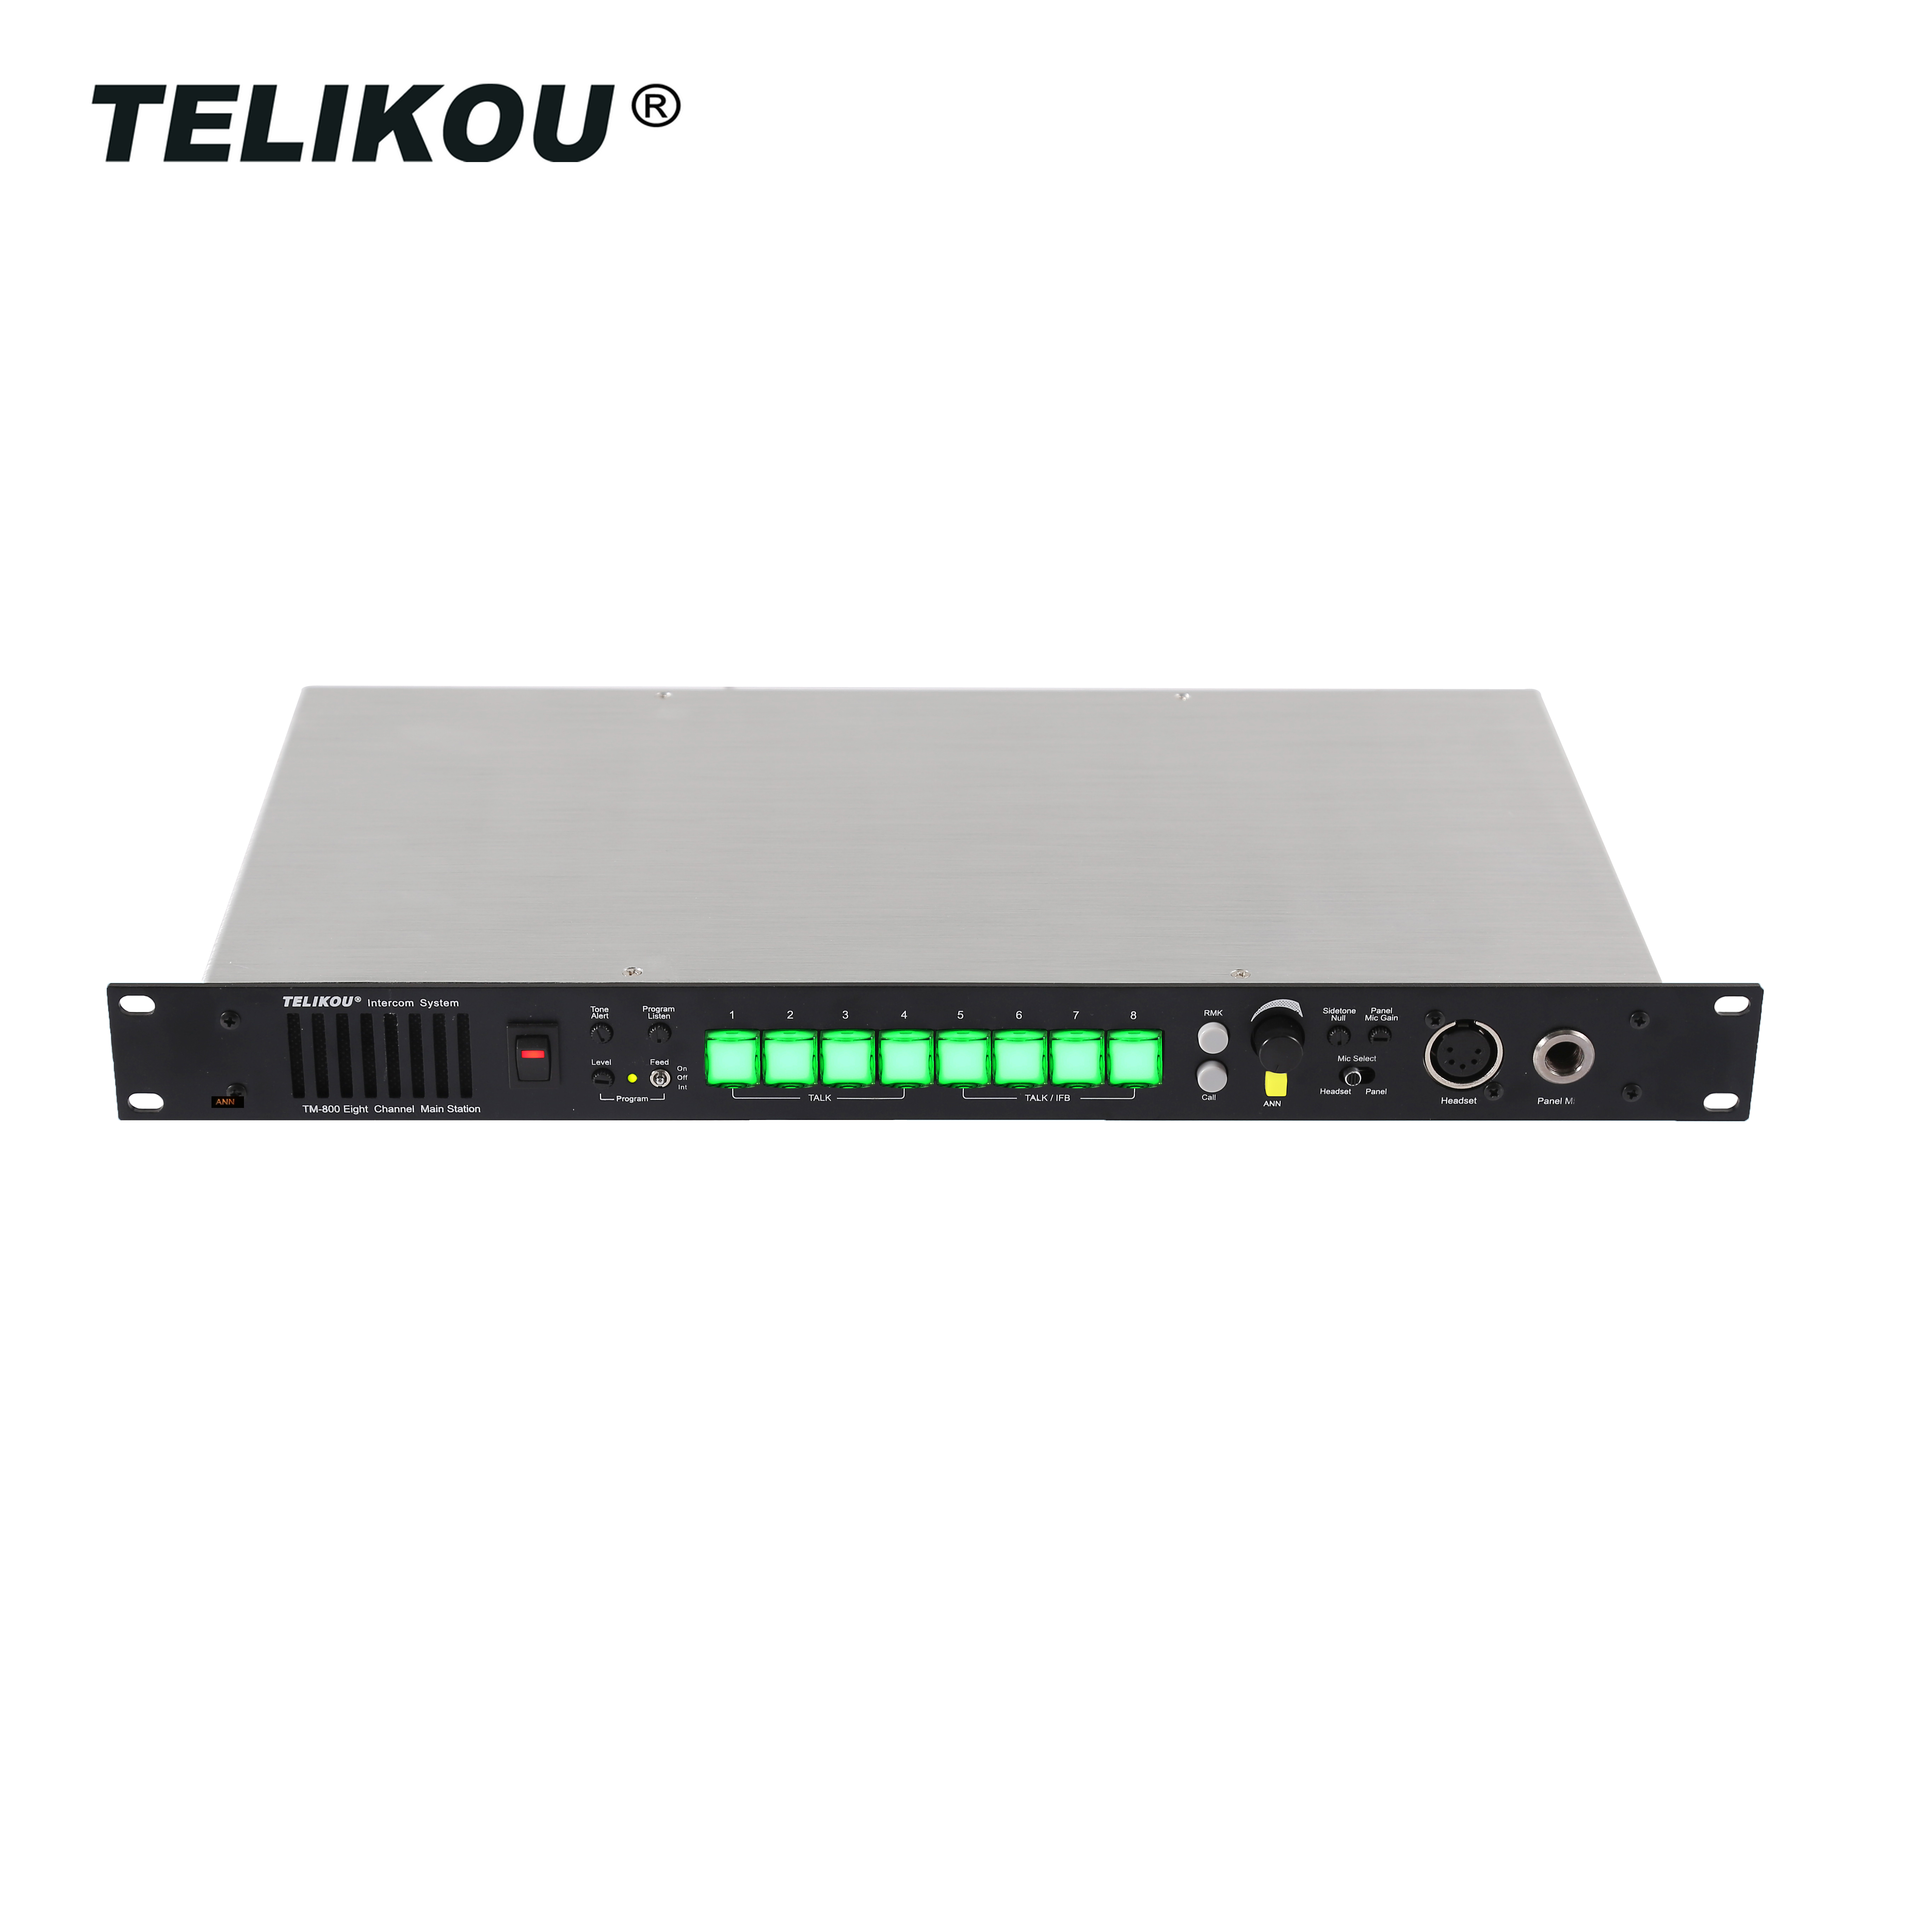 TELIKOU Professionele Intercom Basisstation voor Professionele Audio, Video Verlichting Geluid, Podium, Theater